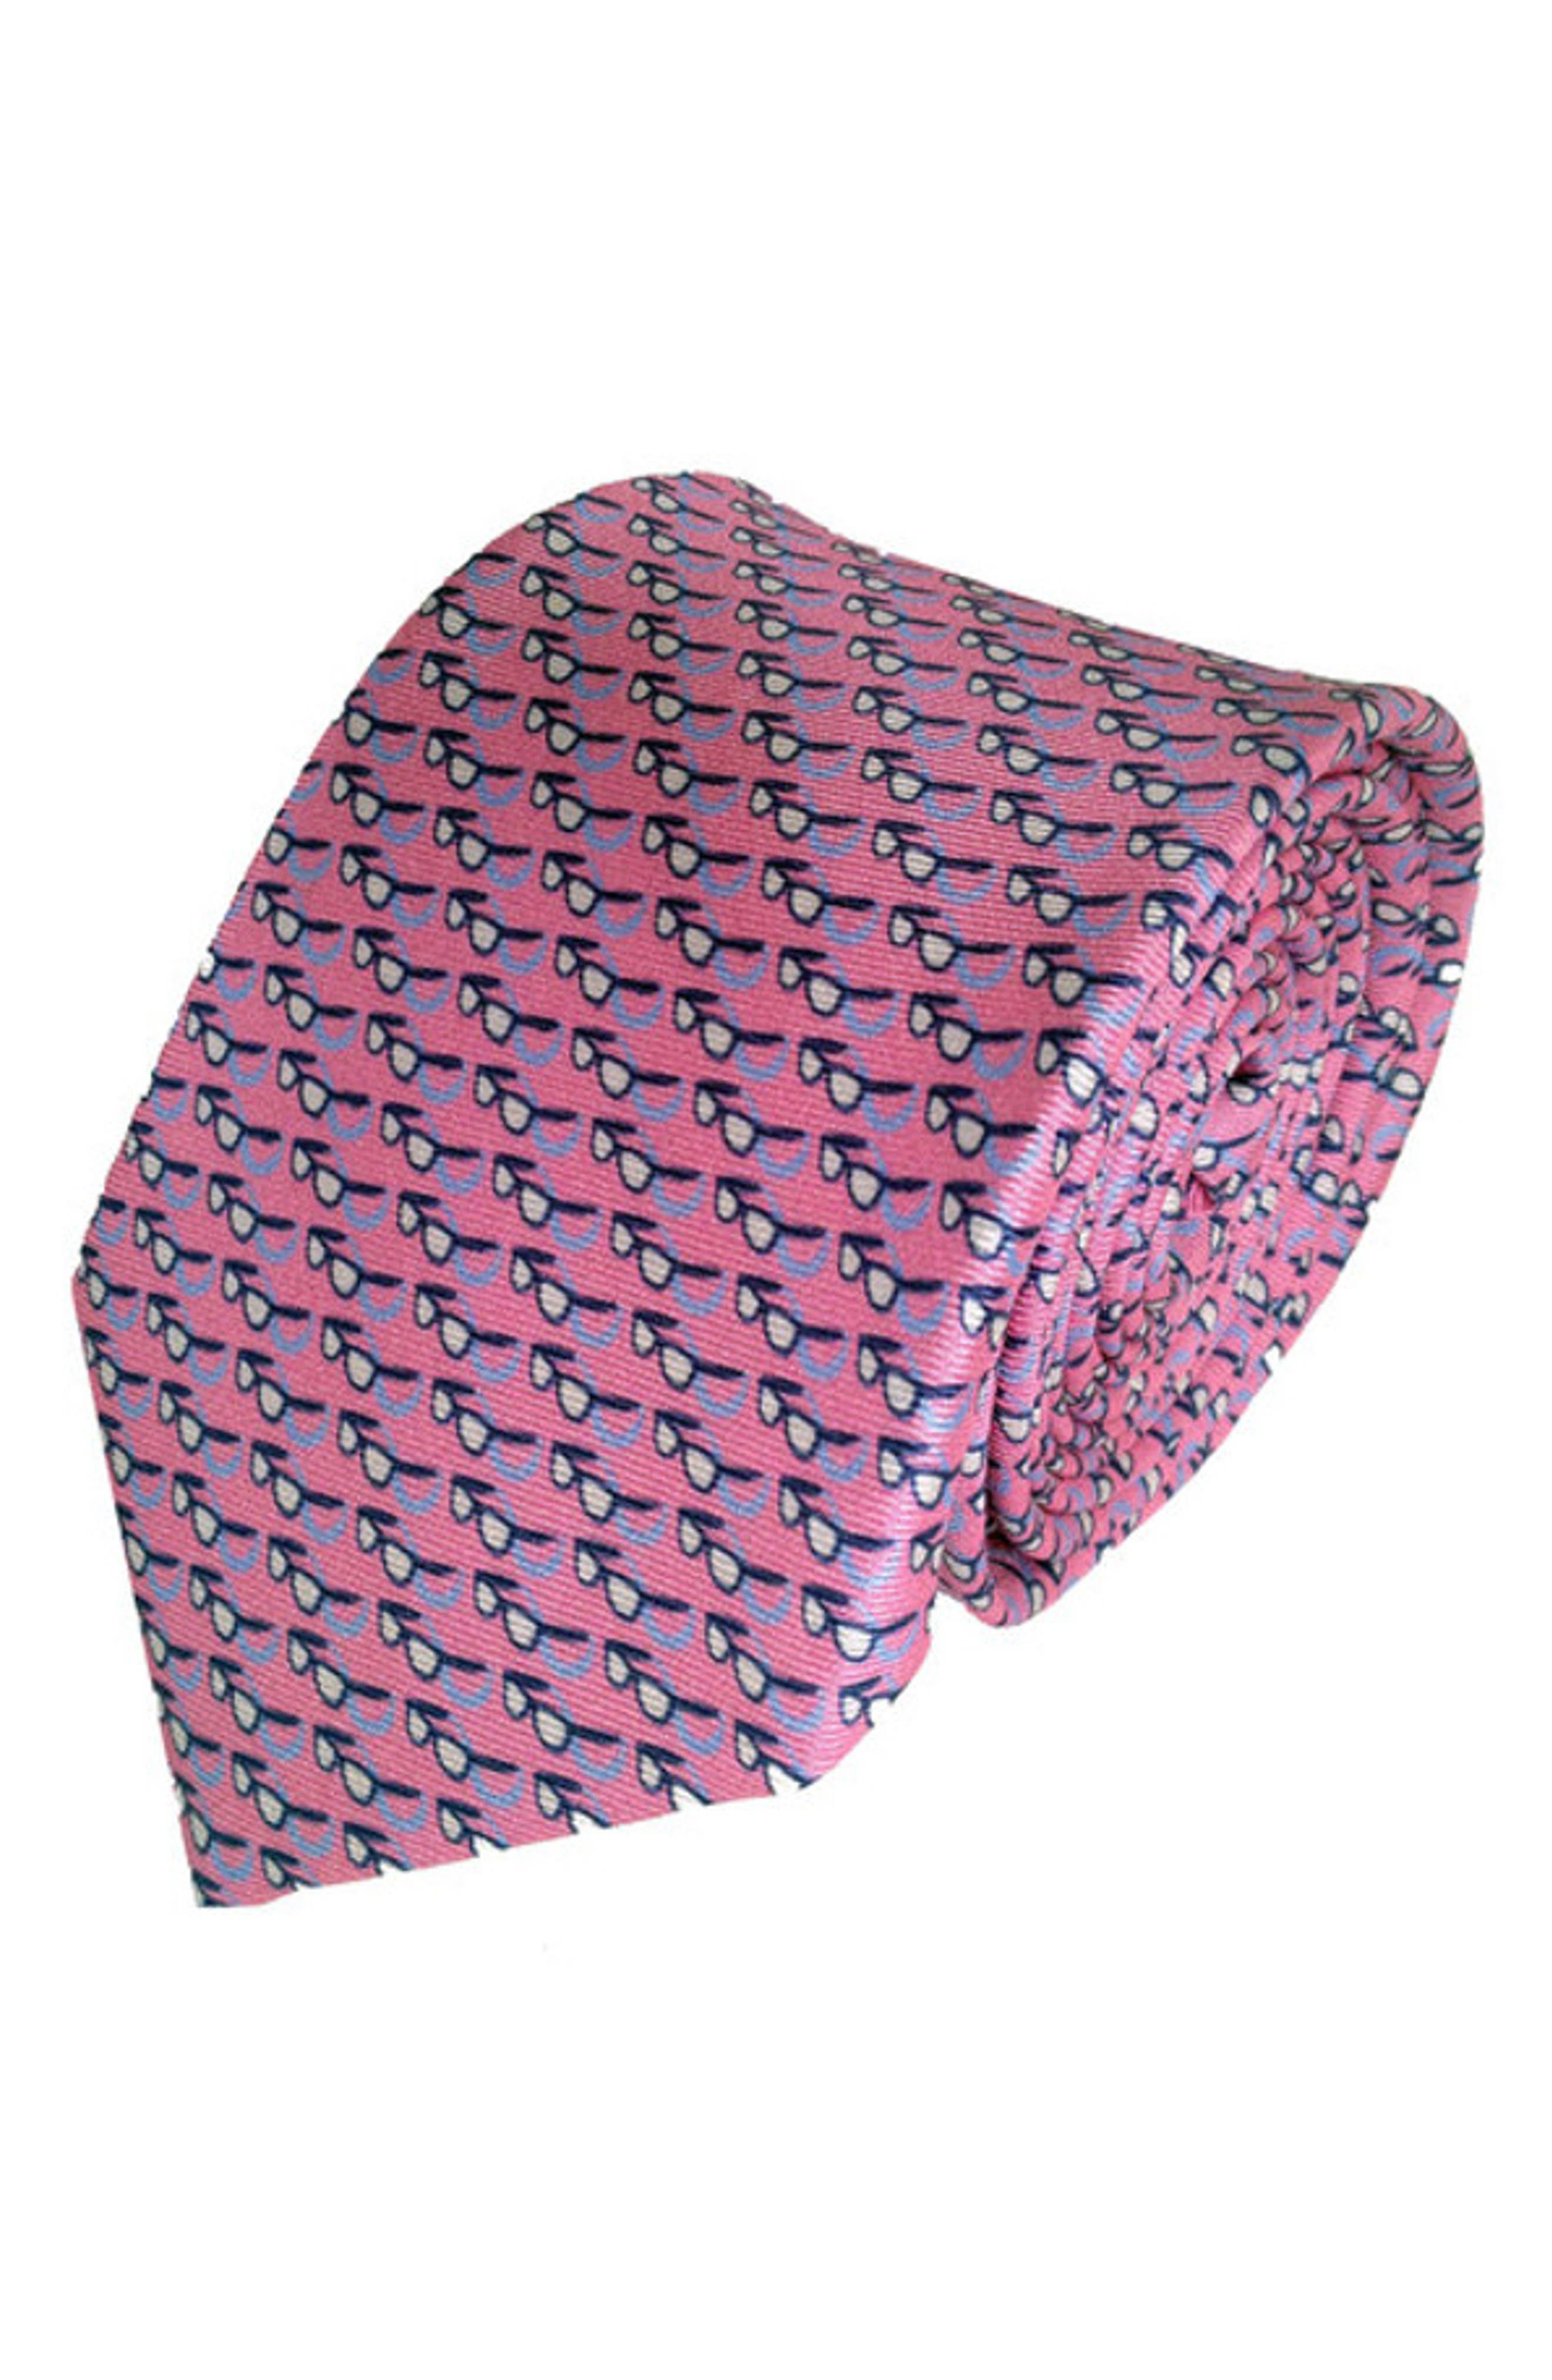 Sweet Shades Silk Tie,                         Main,                         color, Pink